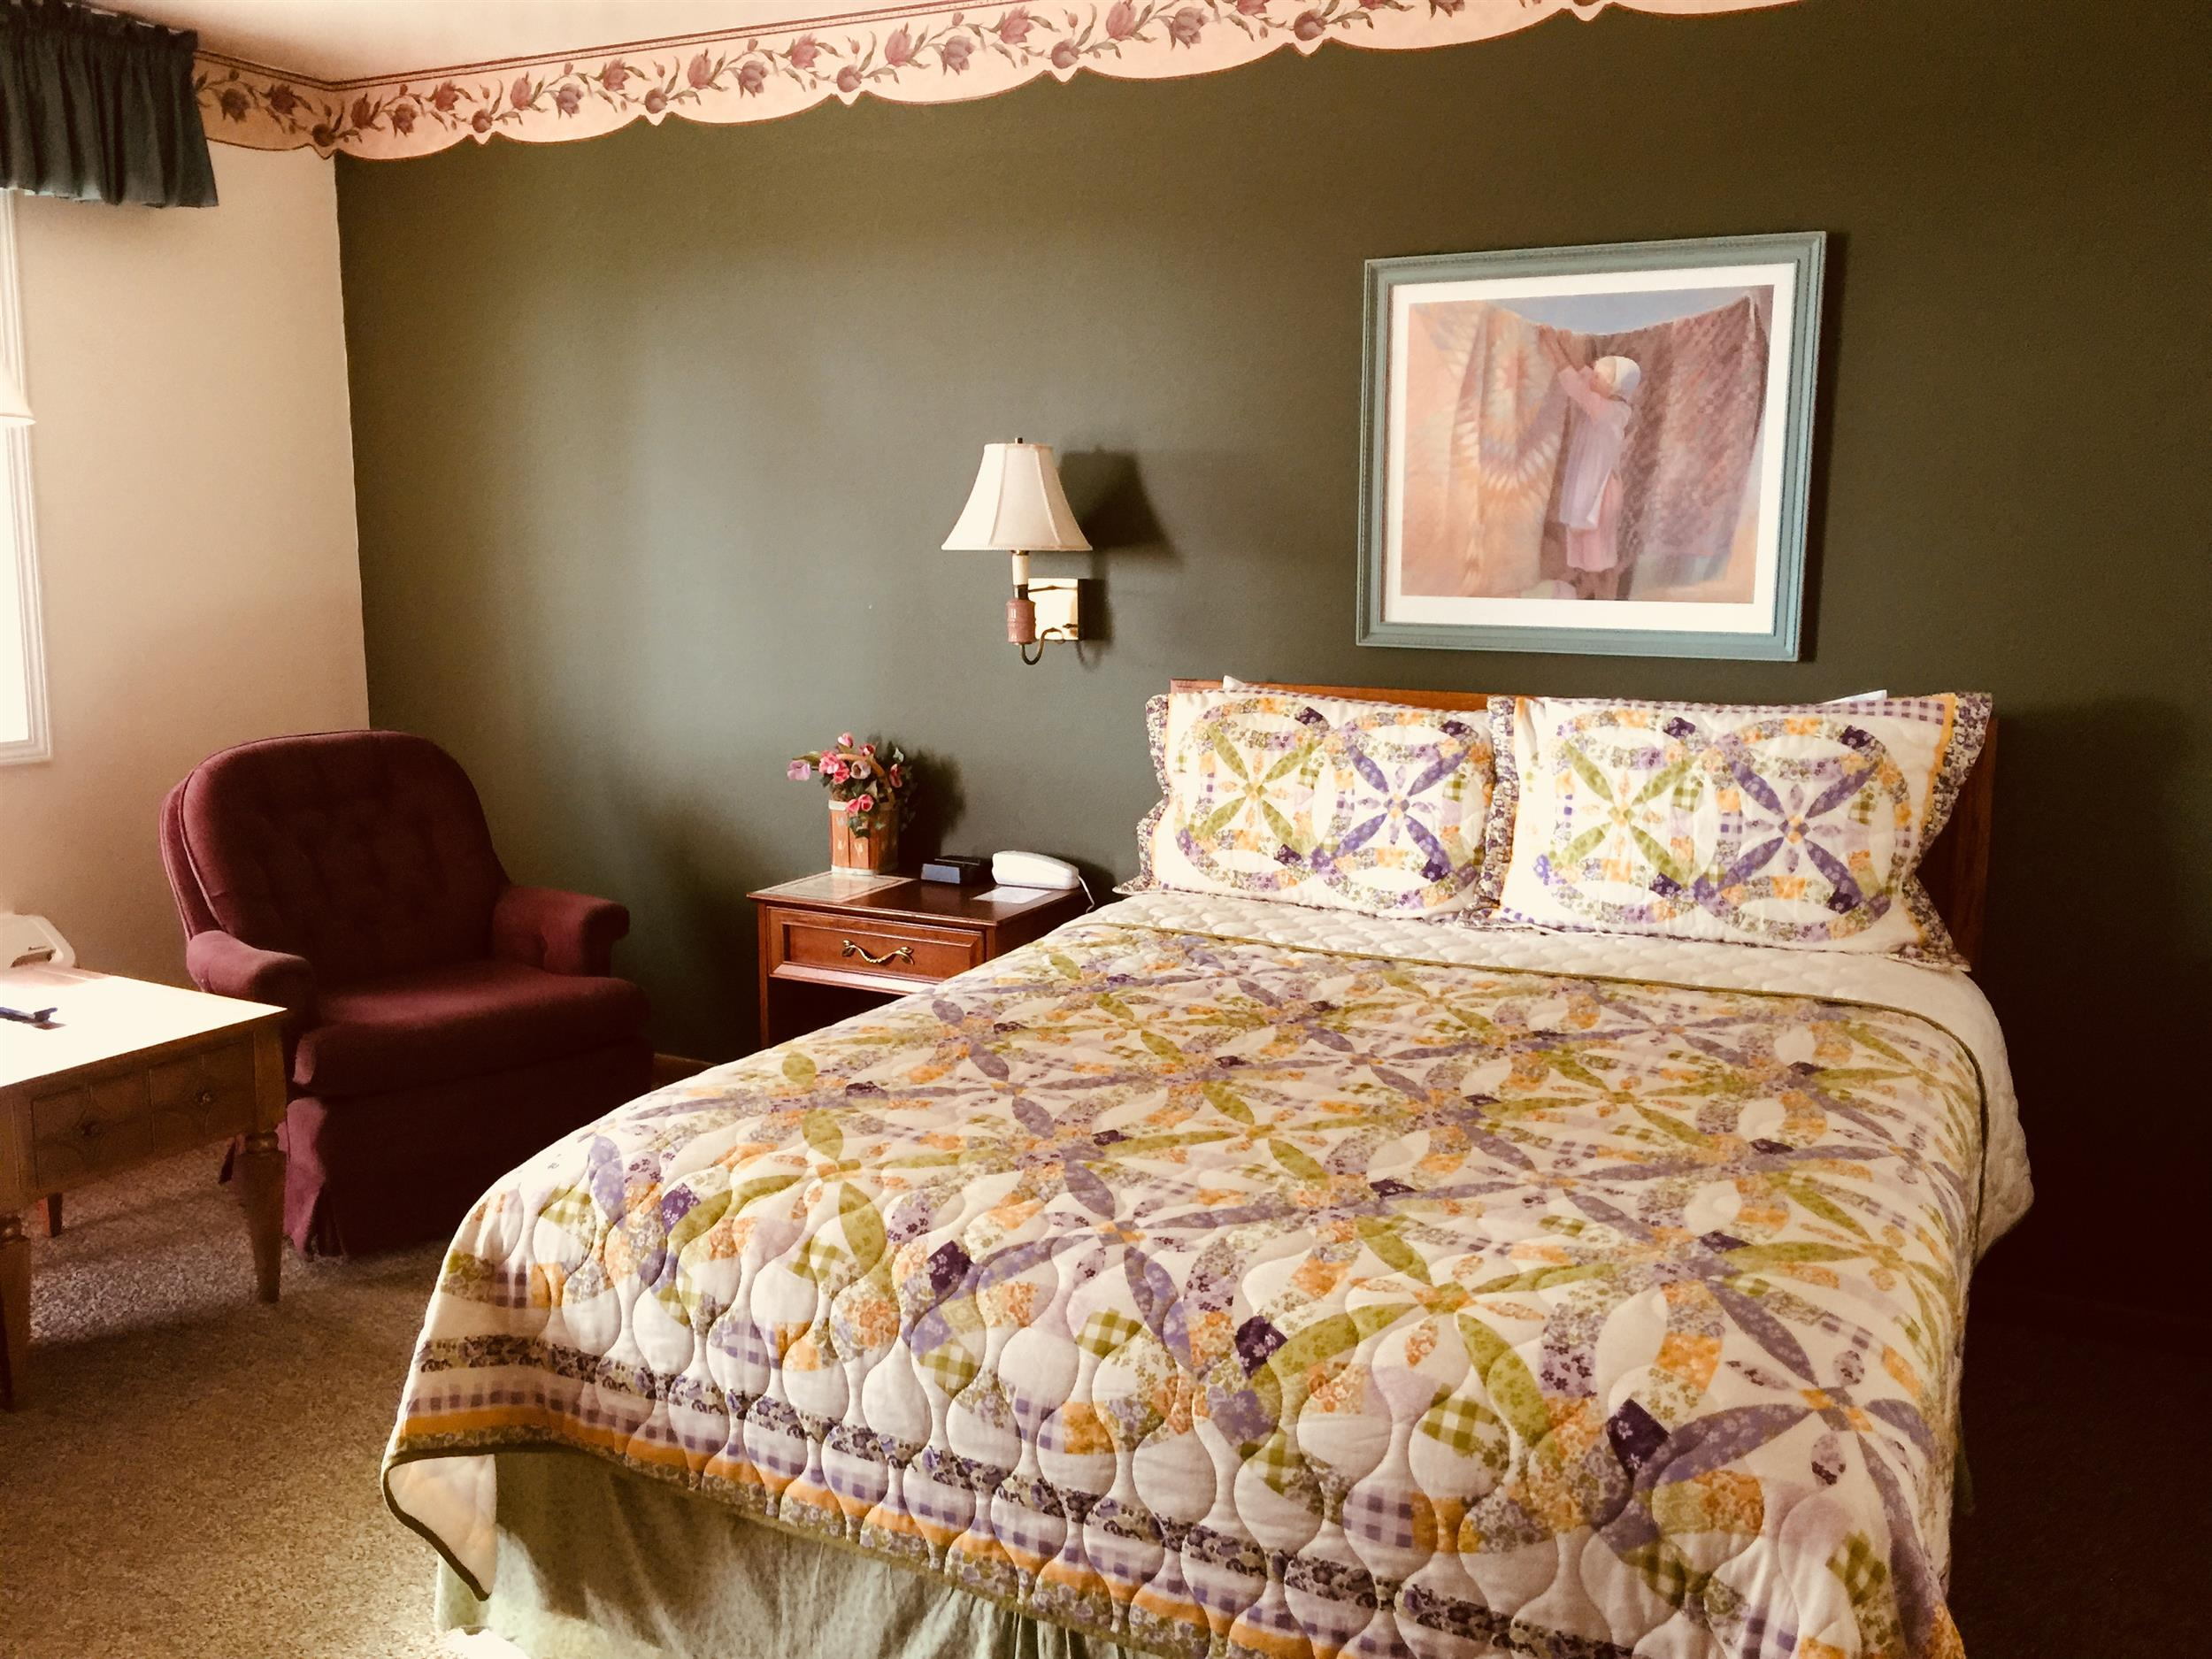 Image for 137) 1 Queen Bed